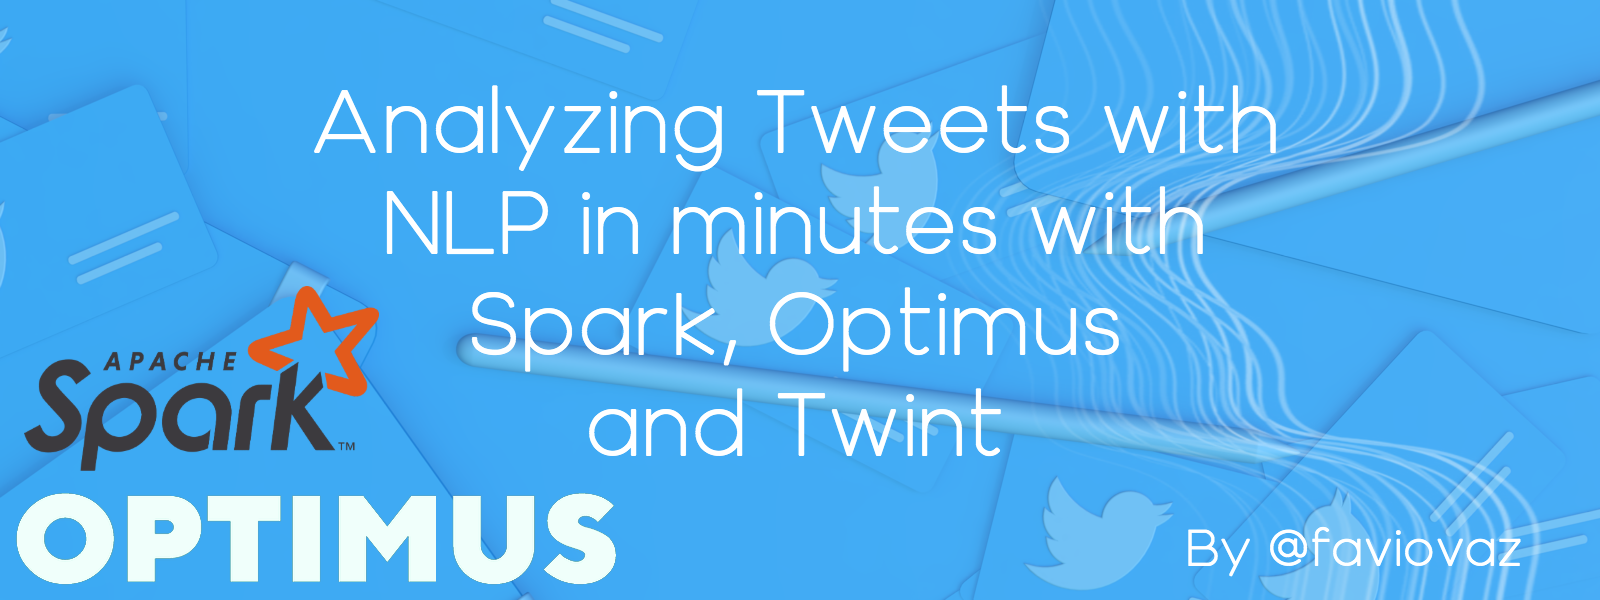 Analyzing Tweets with NLP in minutes with Spark, Optimus and Twint